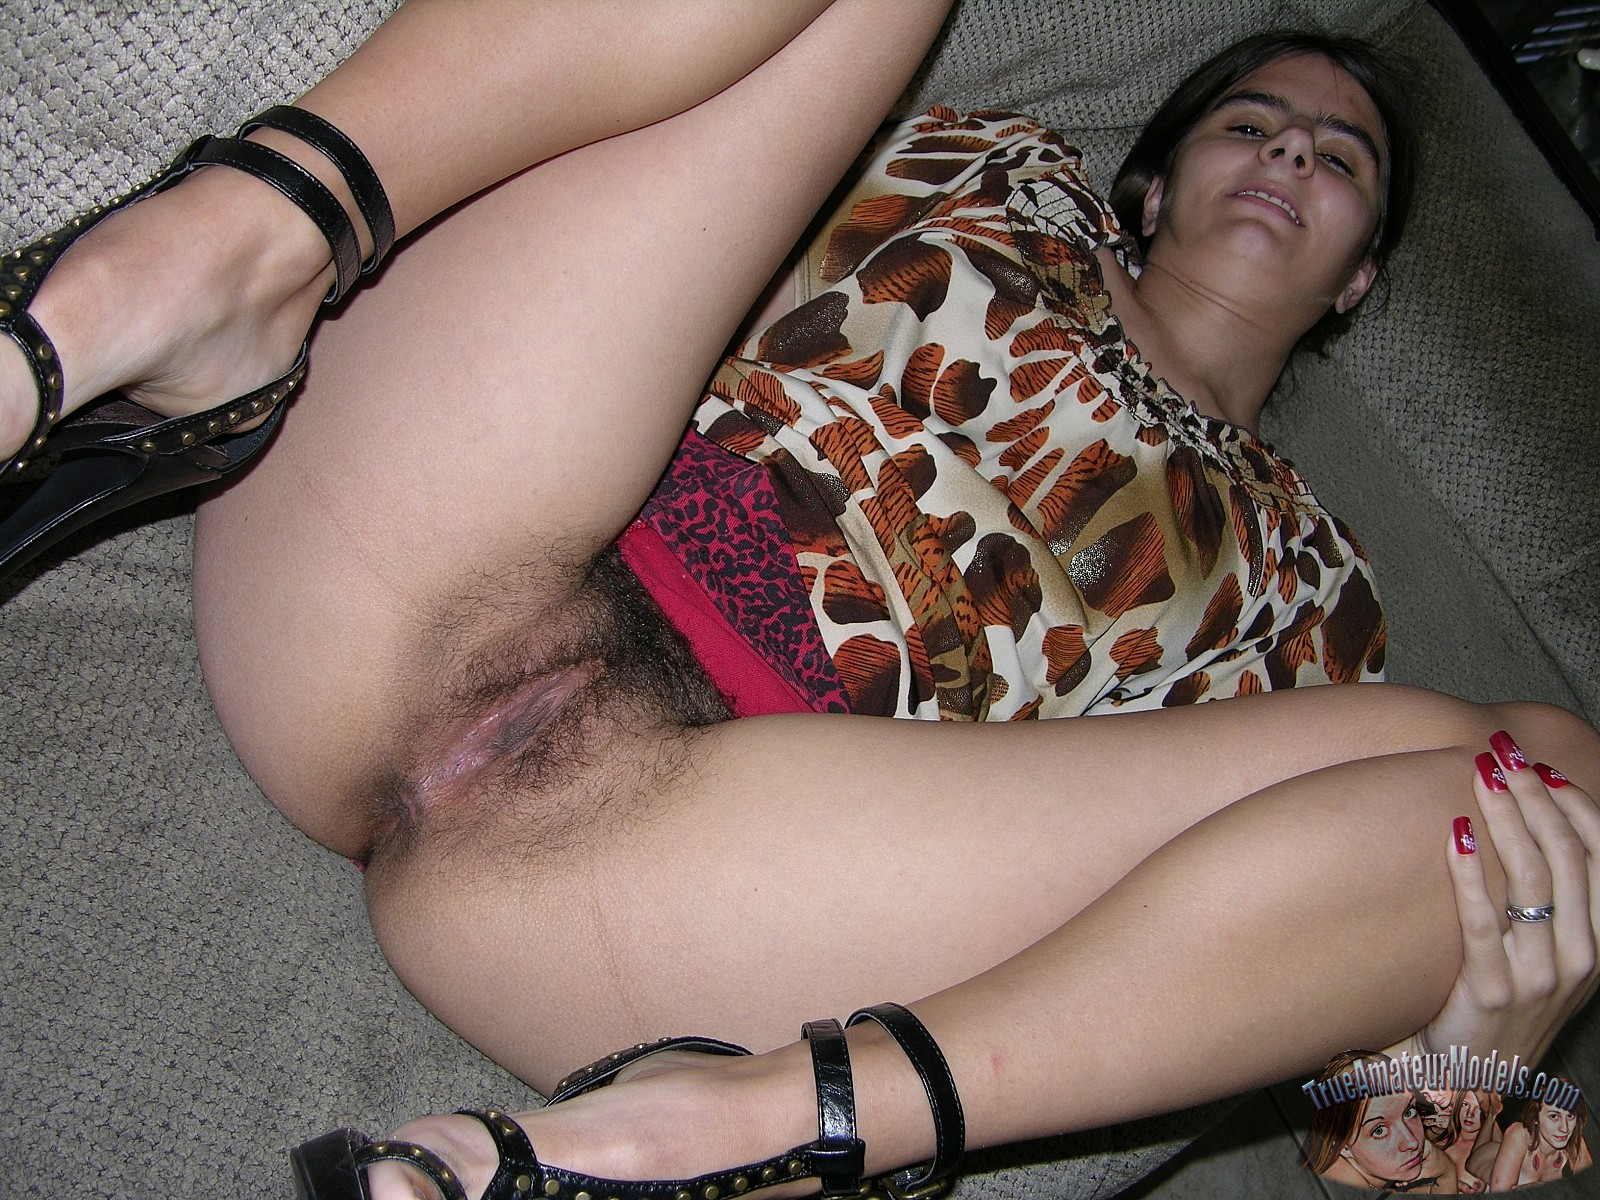 Indian hairy pussy photos